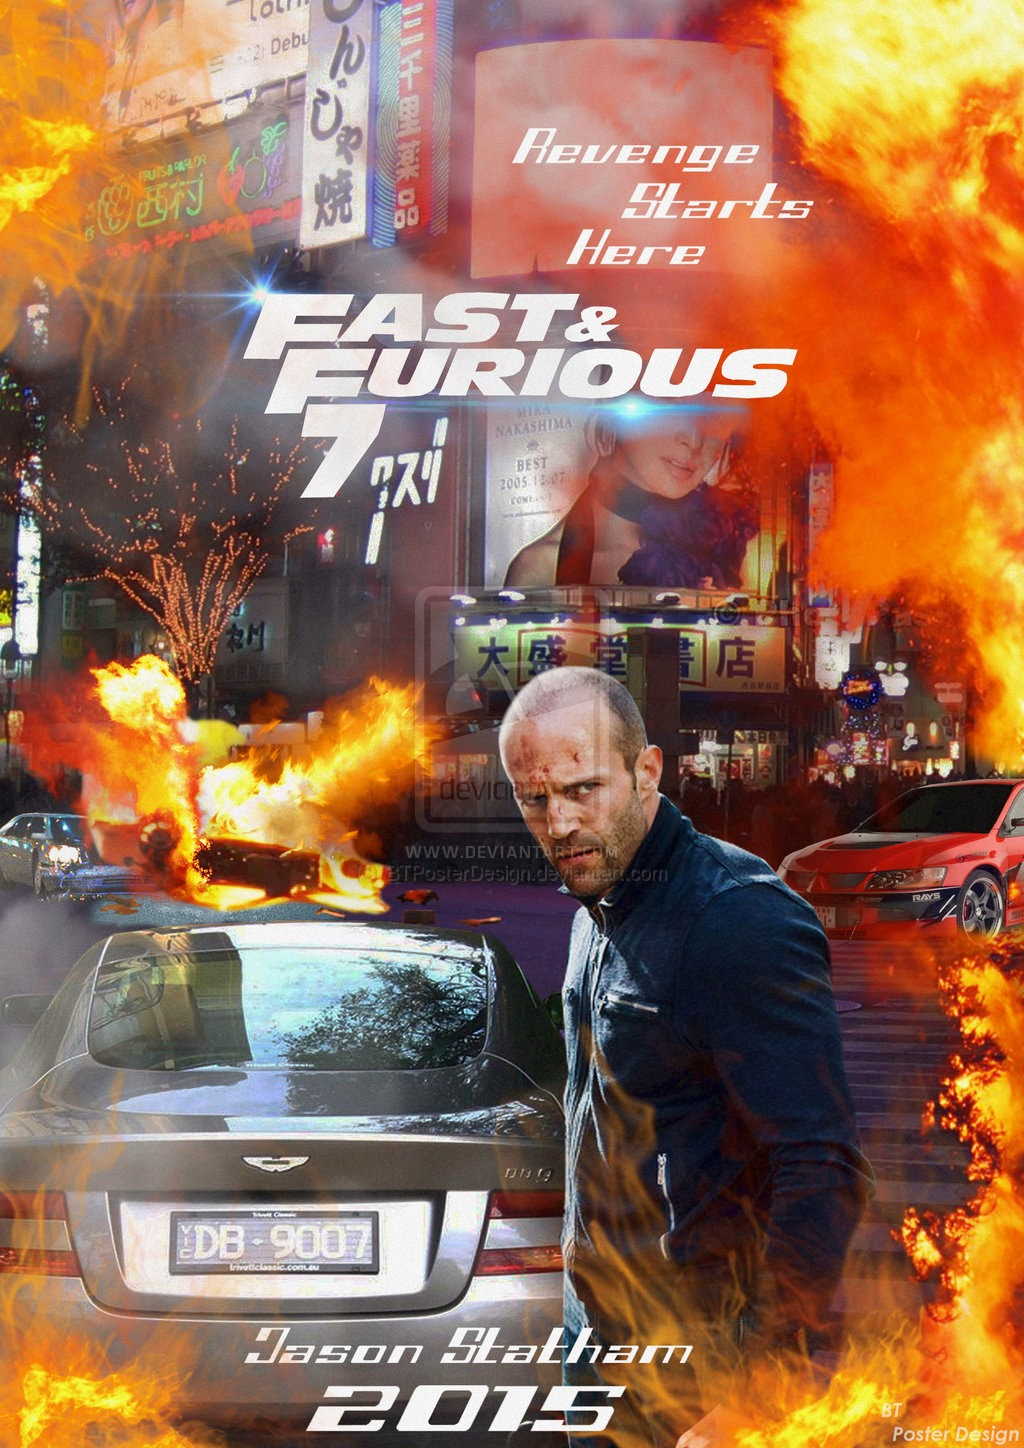 Fast and furious 6 full movie in hindi watch online free streaming